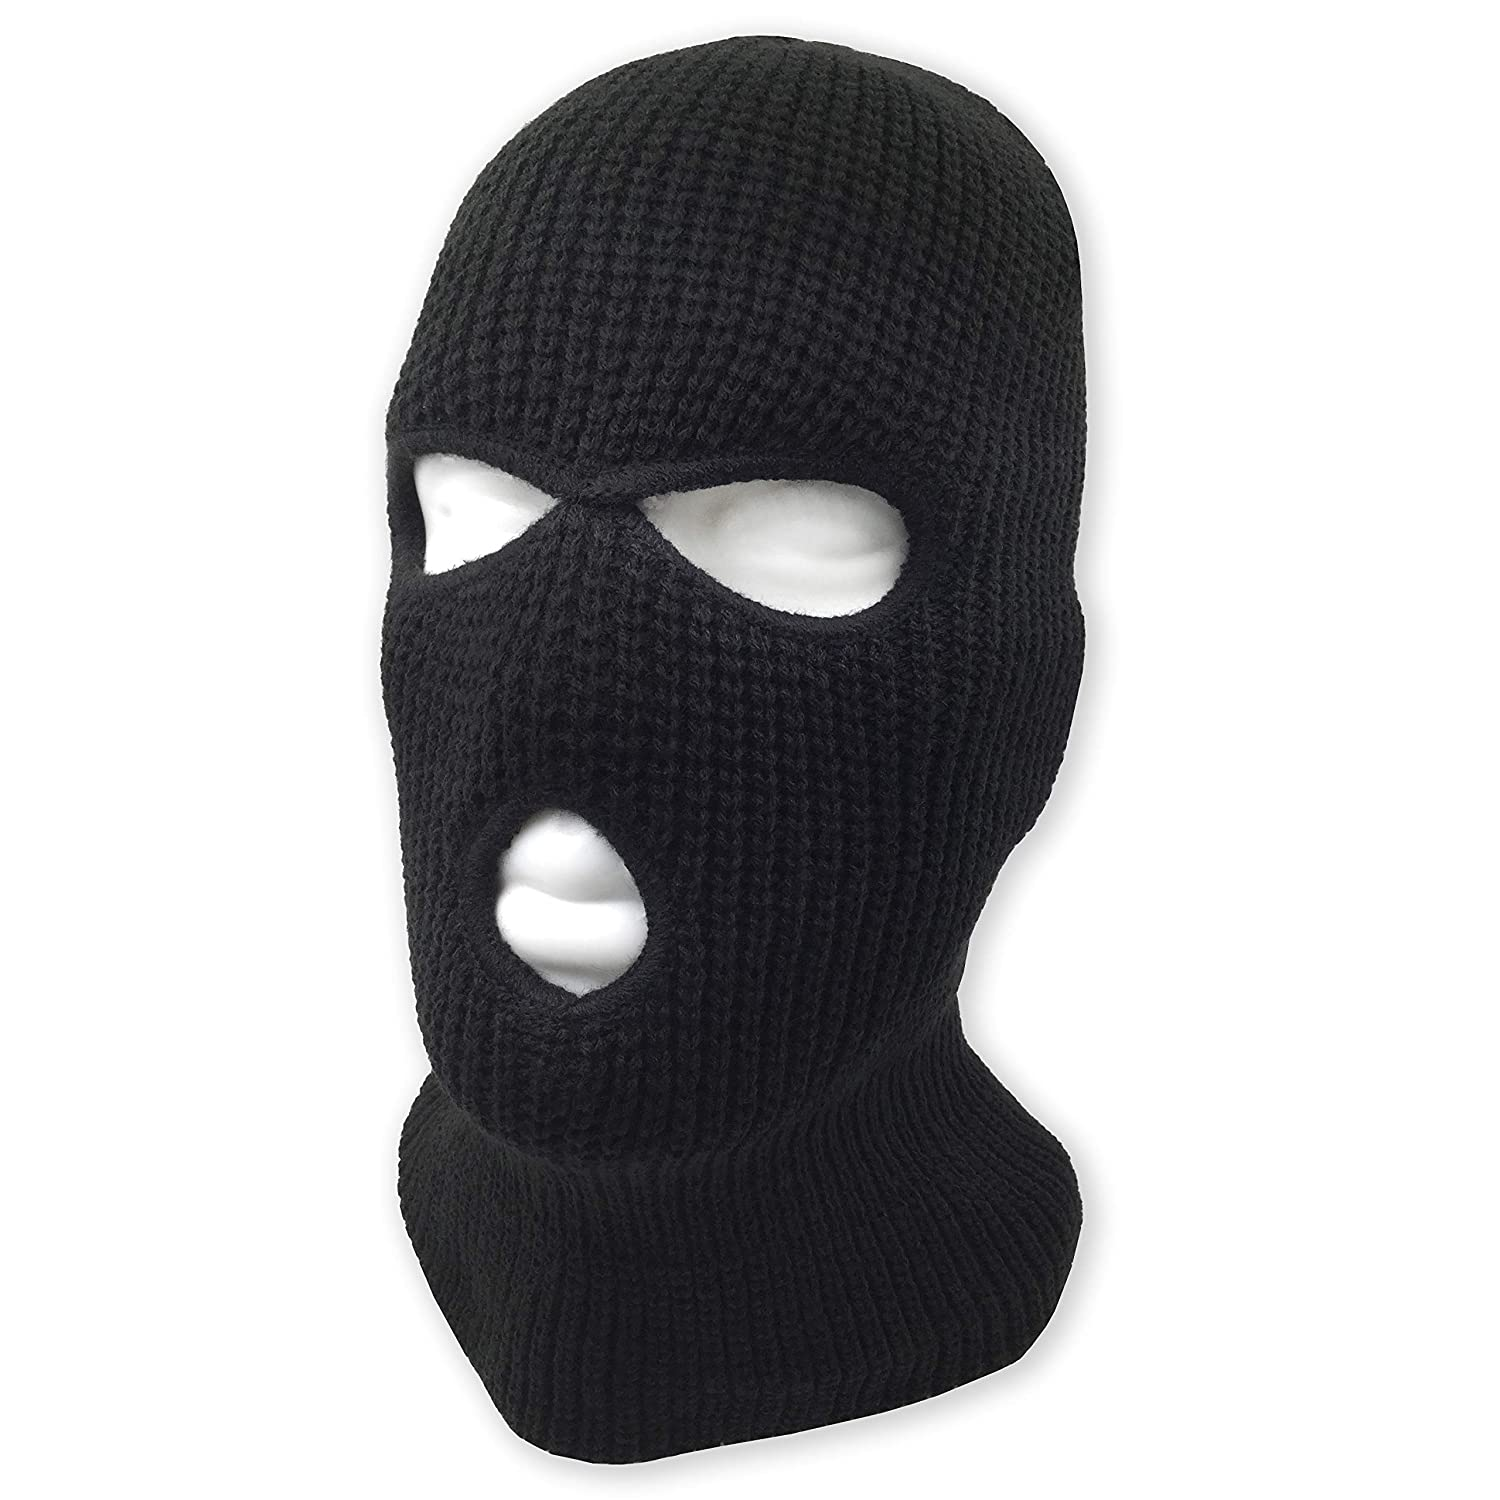 3 Hole Beanie Face Mask Ski Warm Double Thermal Knitted Men and Women